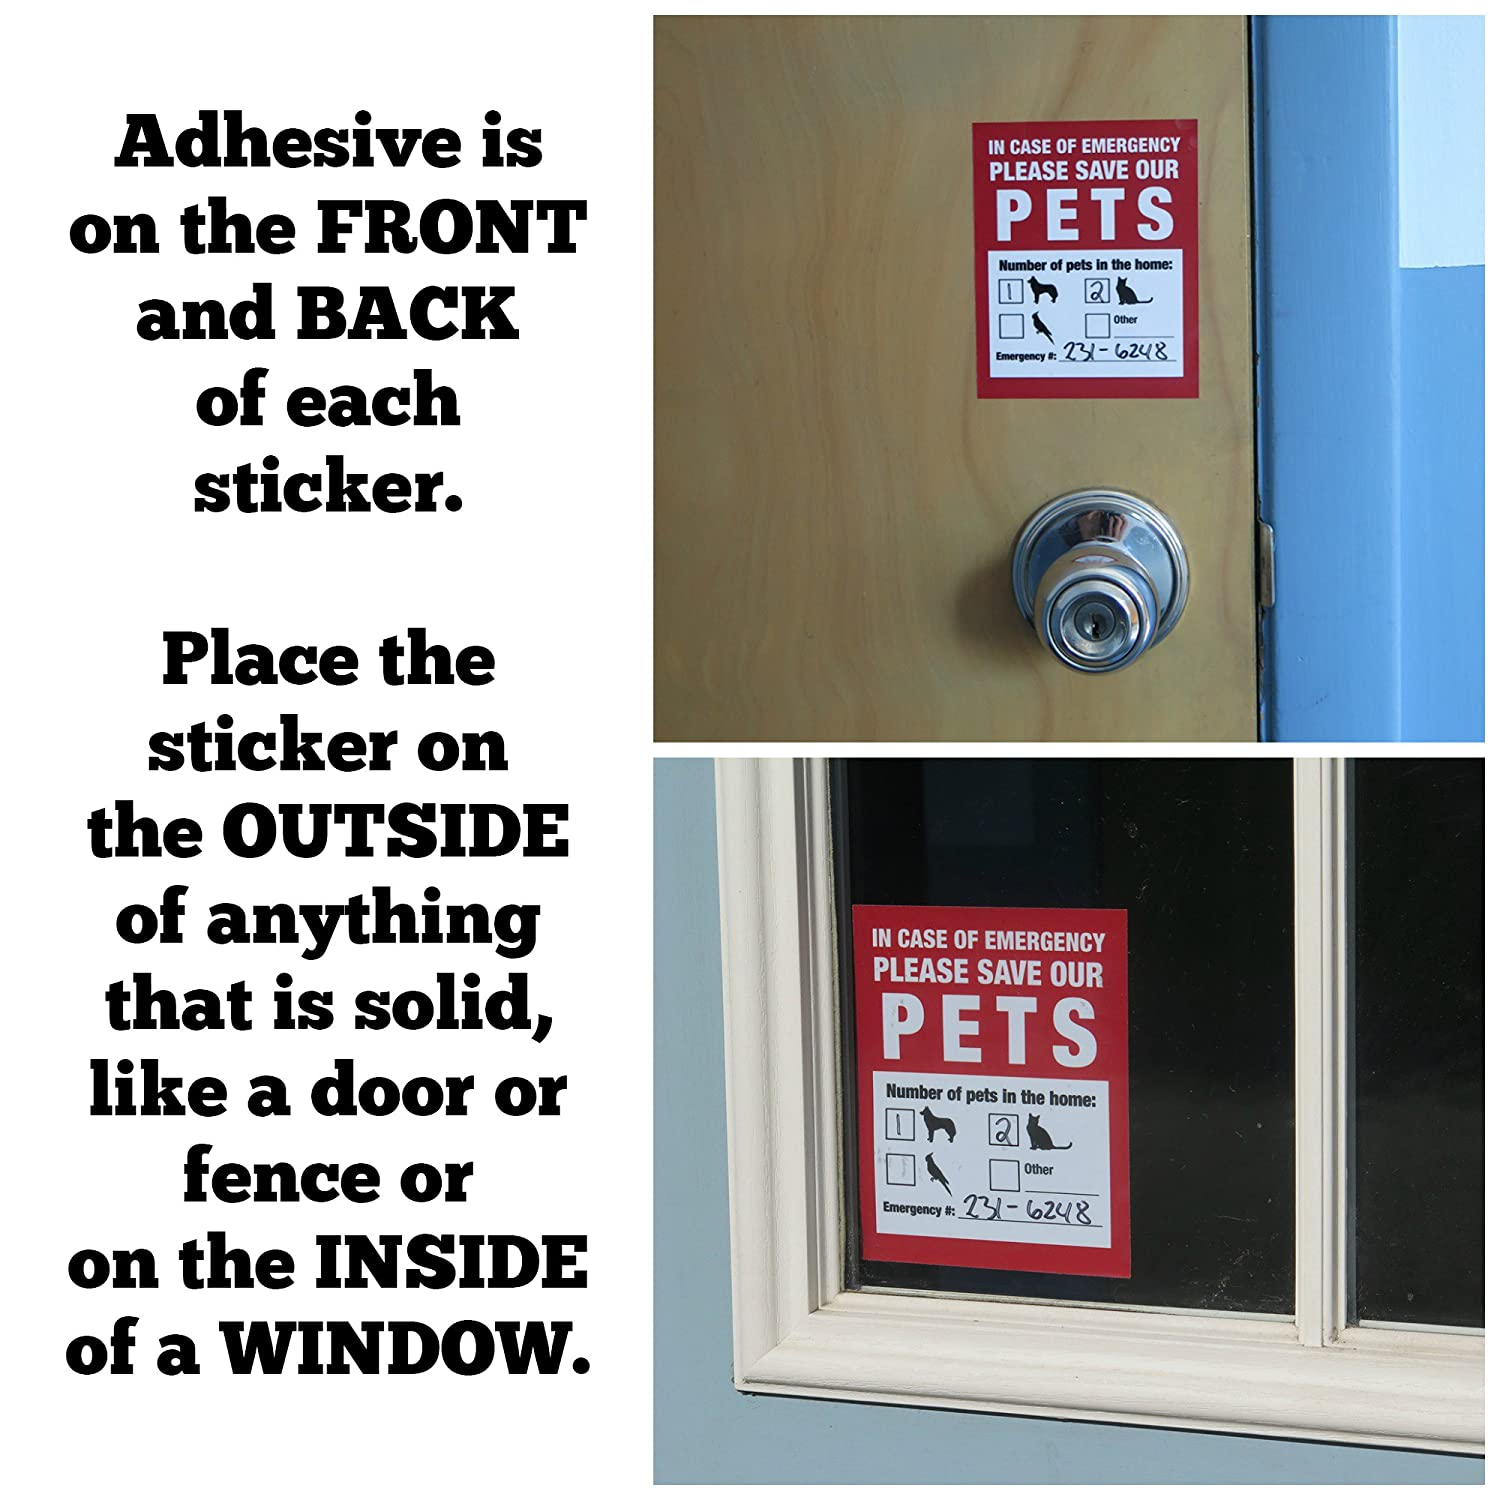 Pet Inside Finder Sticker 4 Pack Adhesive On Front Stiker Magnet Model Nopol Standar And Back In A Fire Emergency Firefighters Will See Alert The Window Door